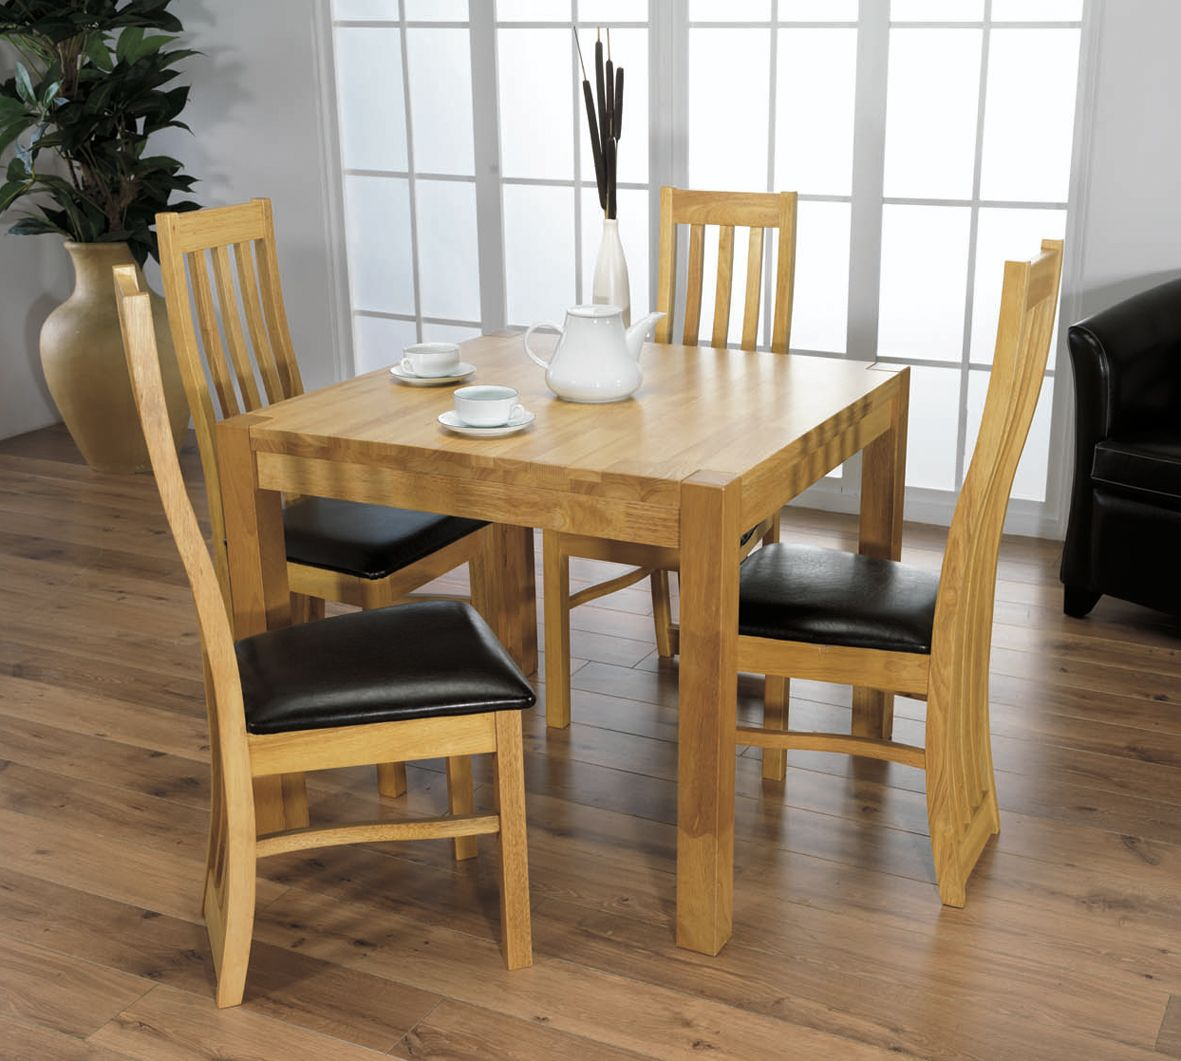 Why A Small Dining Table And Chairs Is A Premium Choice Small Square Dining Table Square Dining Tables Square Kitchen Tables